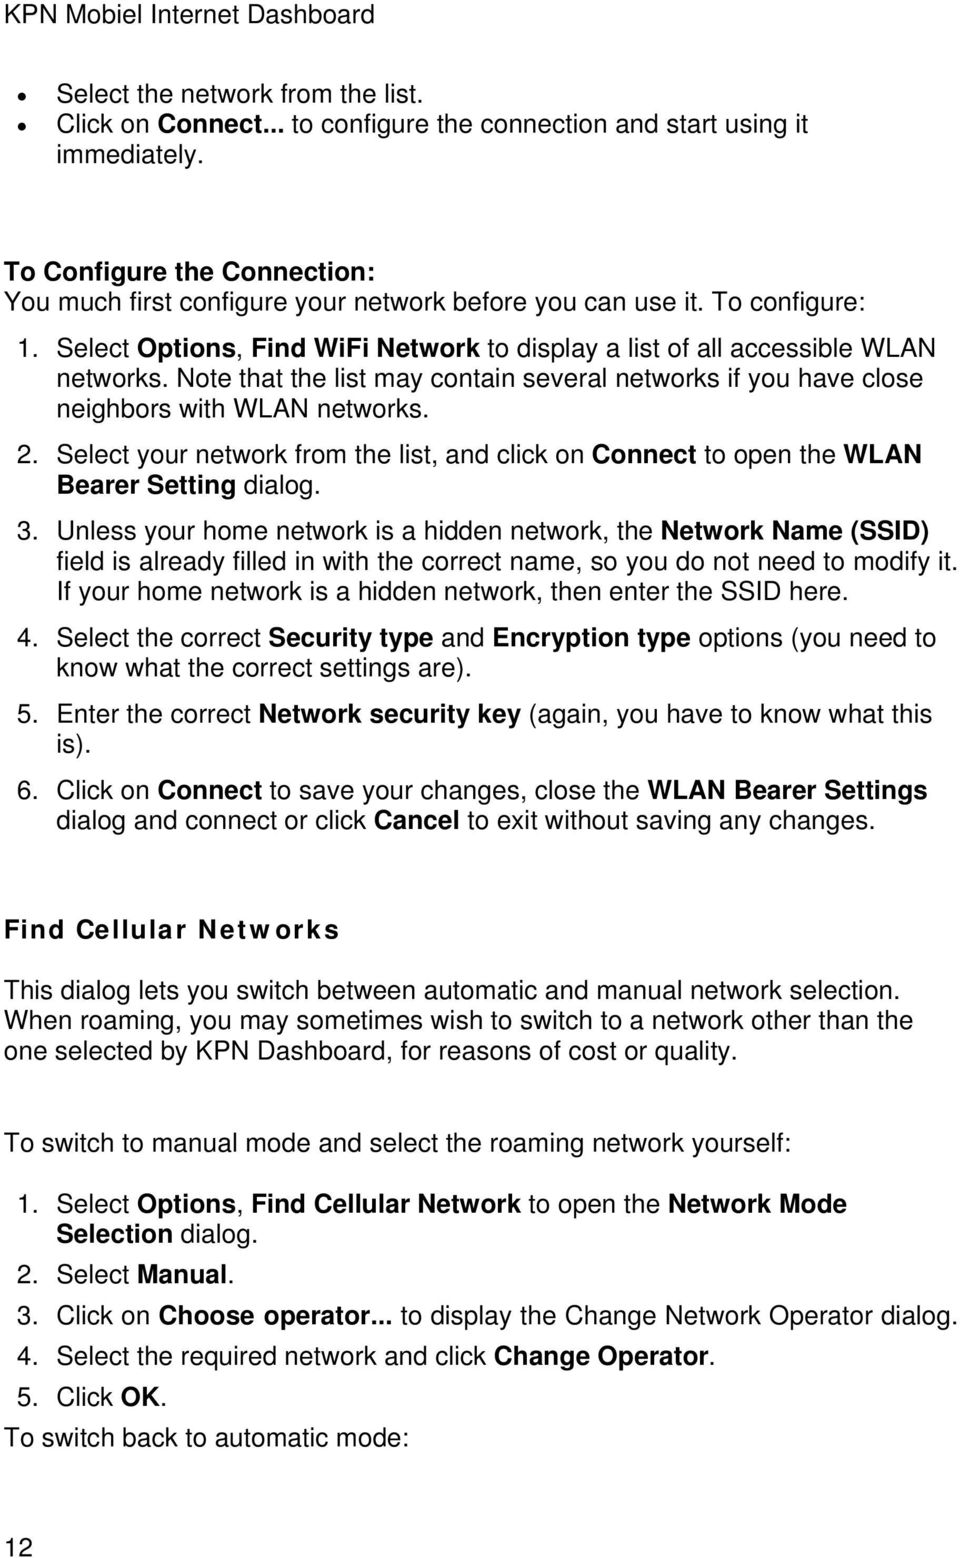 Note that the list may contain several networks if you have close neighbors with WLAN networks. 2. Select your network from the list, and click on Connect to open the WLAN Bearer Setting dialog. 3.